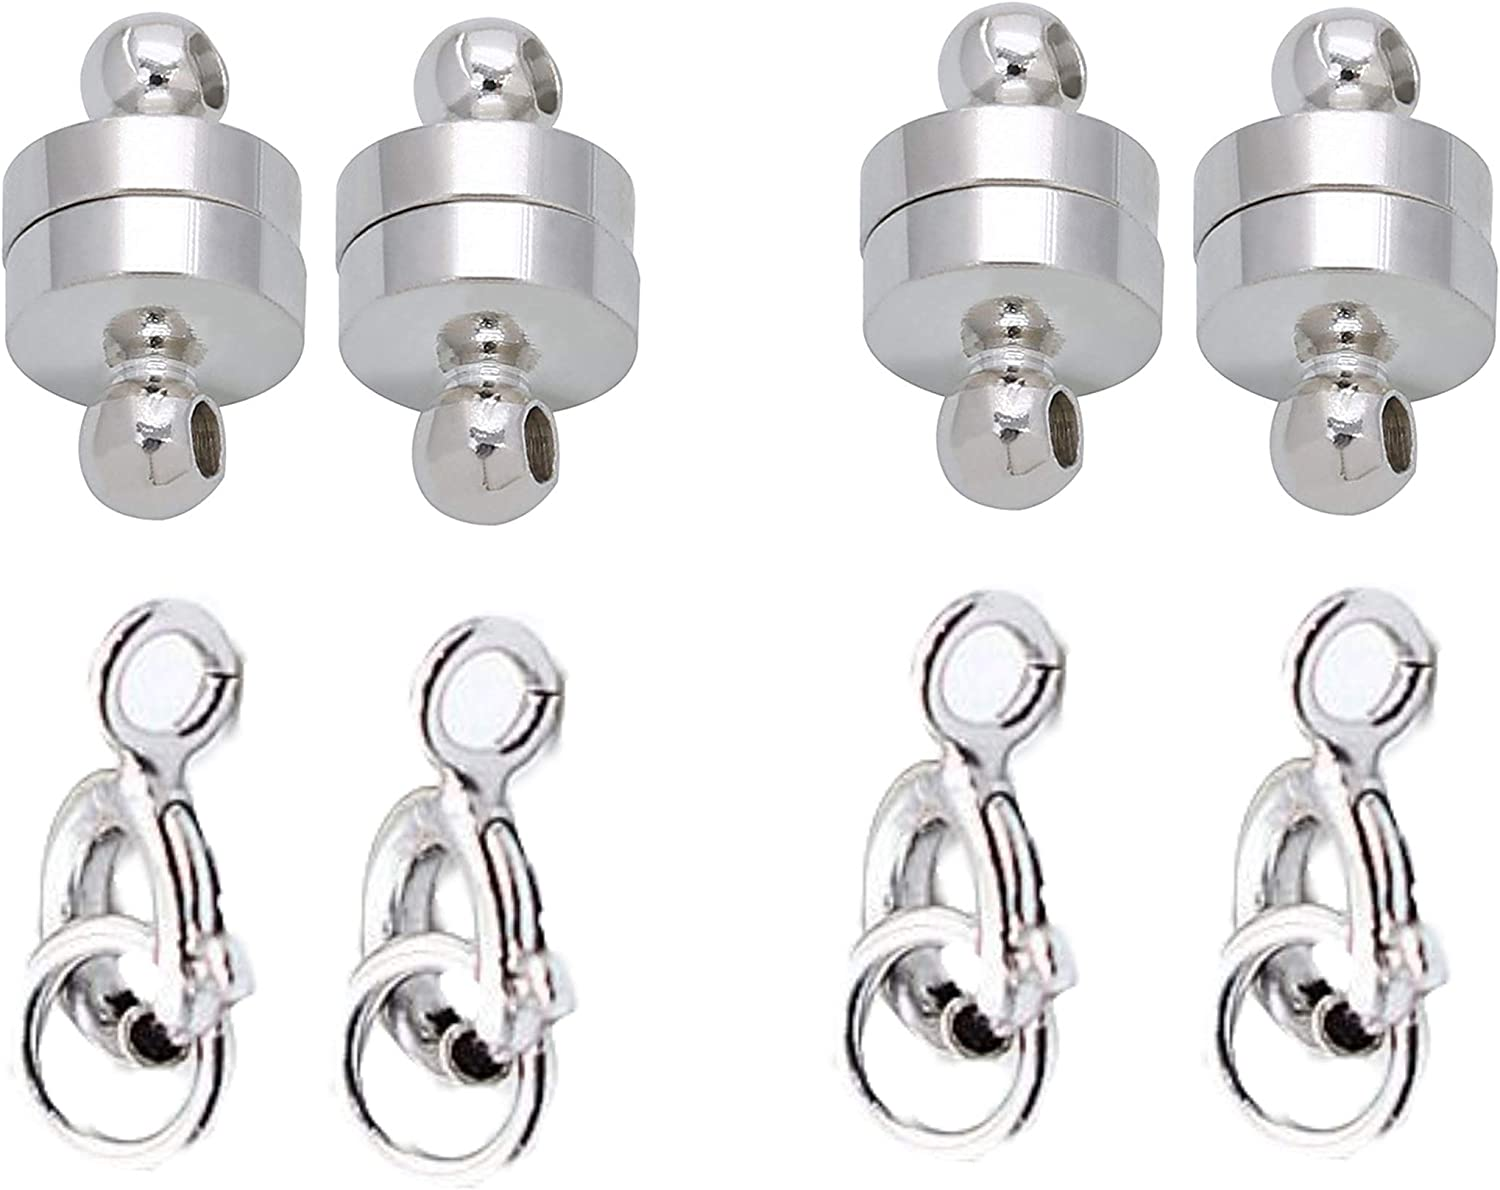 4 Pack 925 Sliver Sterling 925 Silver 4 Pack Chain Extender Jewelry Clasp Converter Sparik Enjoy Magnetic Necklace Clasps and Closures